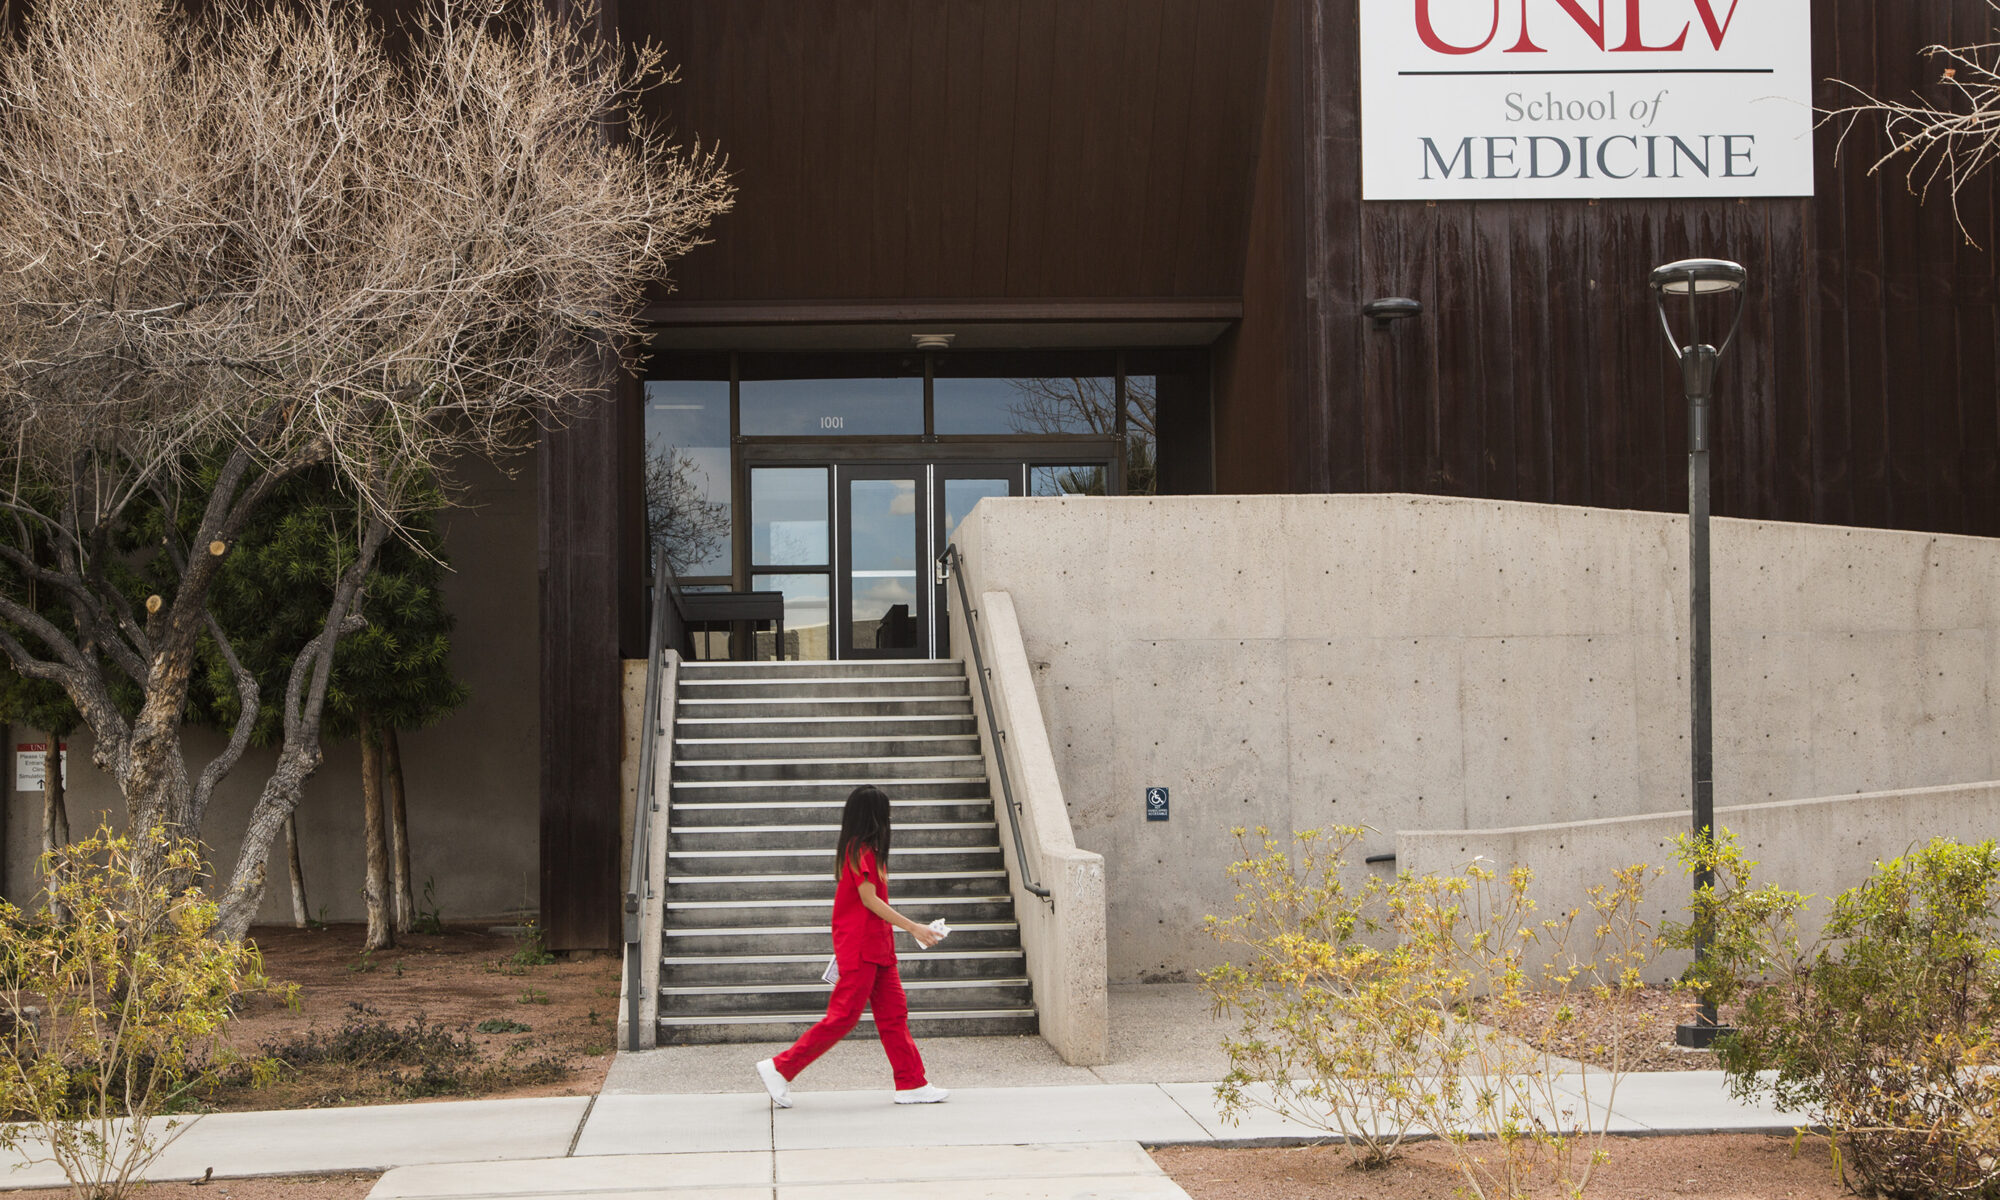 A student walking in front of the UNLV School of Medicine building